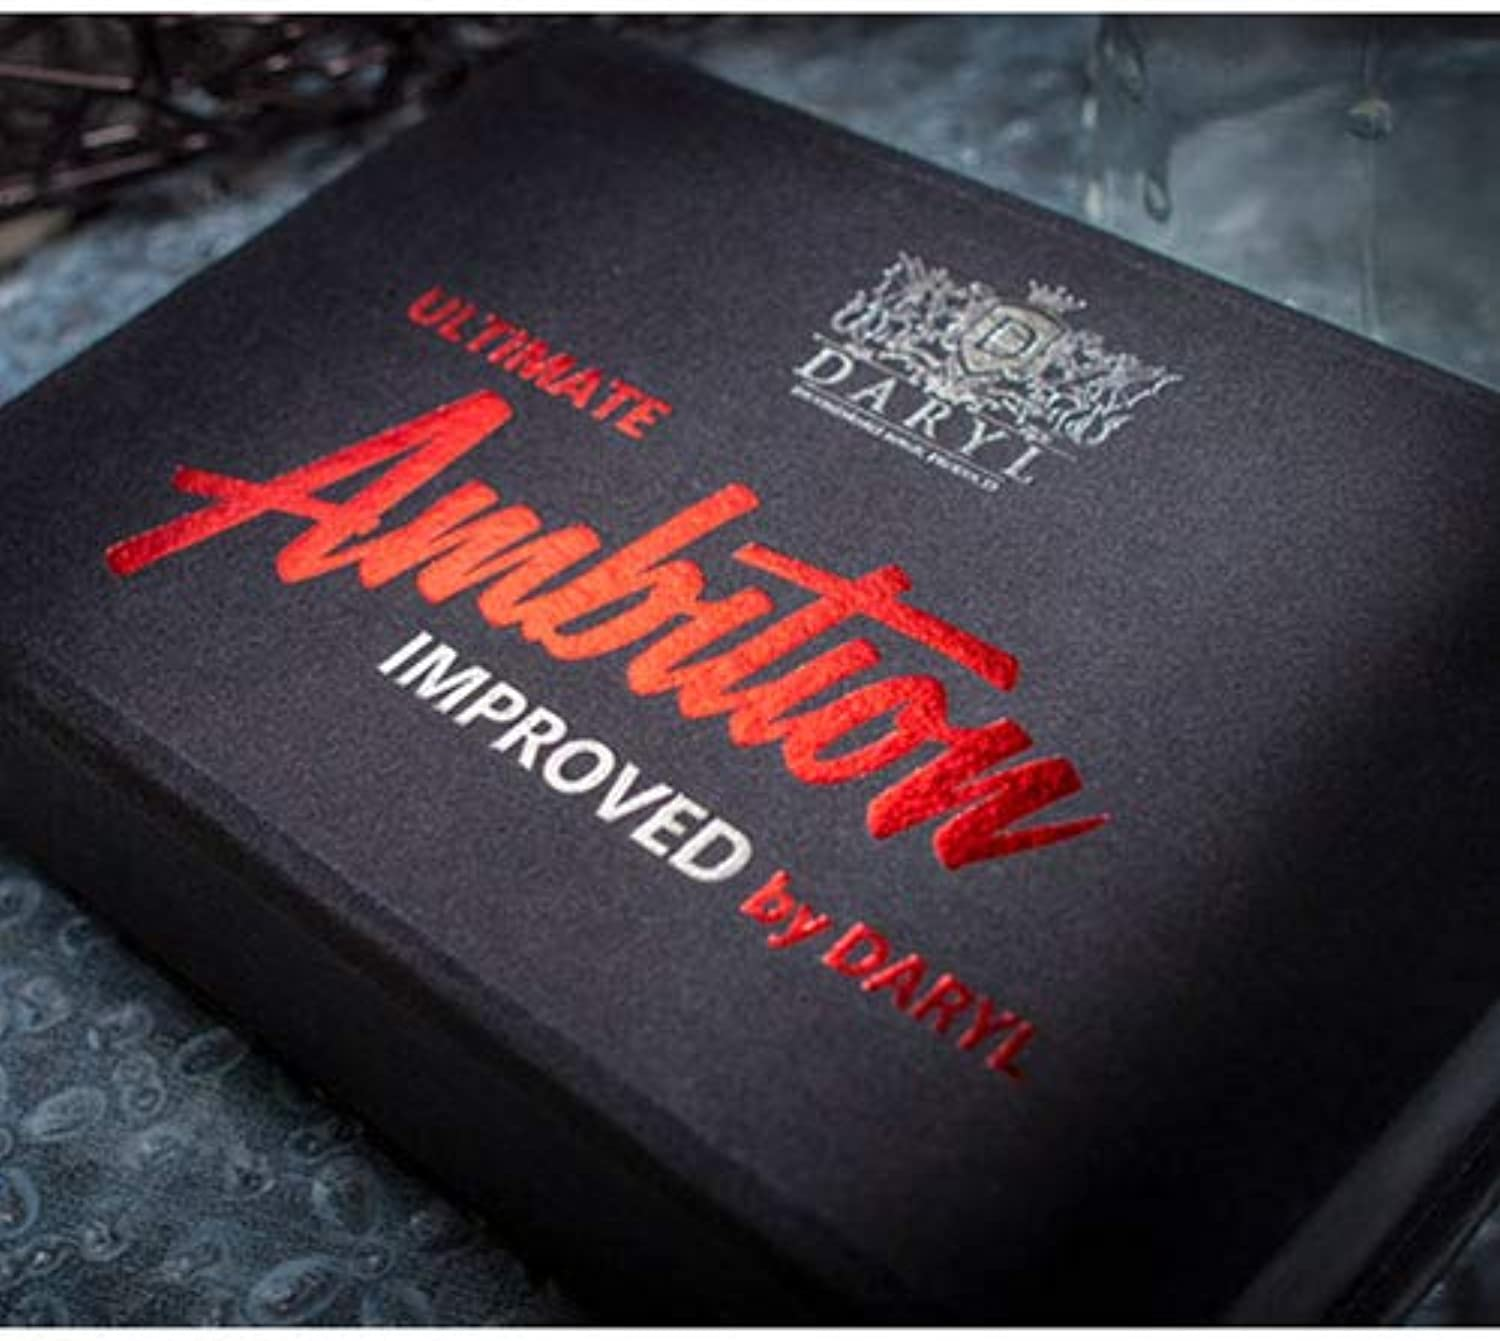 SOLOMAGIA Ultimate Ambition Improved Red (Gimmicks and Online Instructions) by Daryl  Stage Magic  Zaubertricks und Props